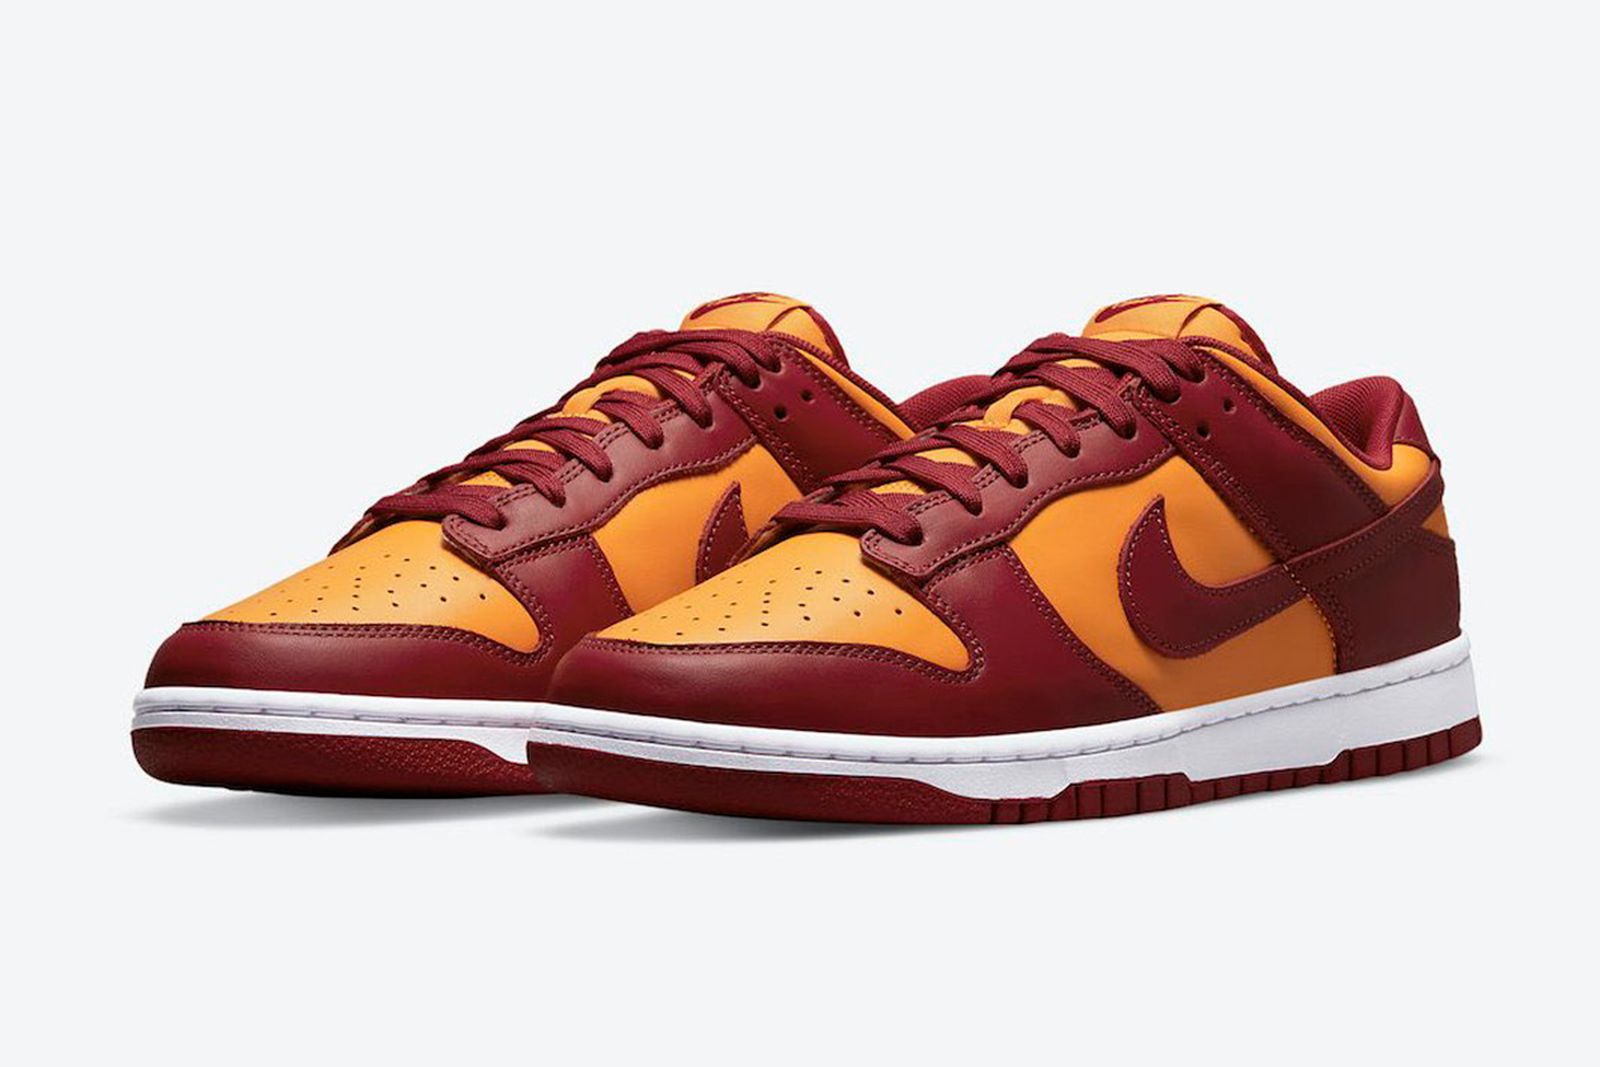 nike-dunk-low-upcoming-2021-releases-01